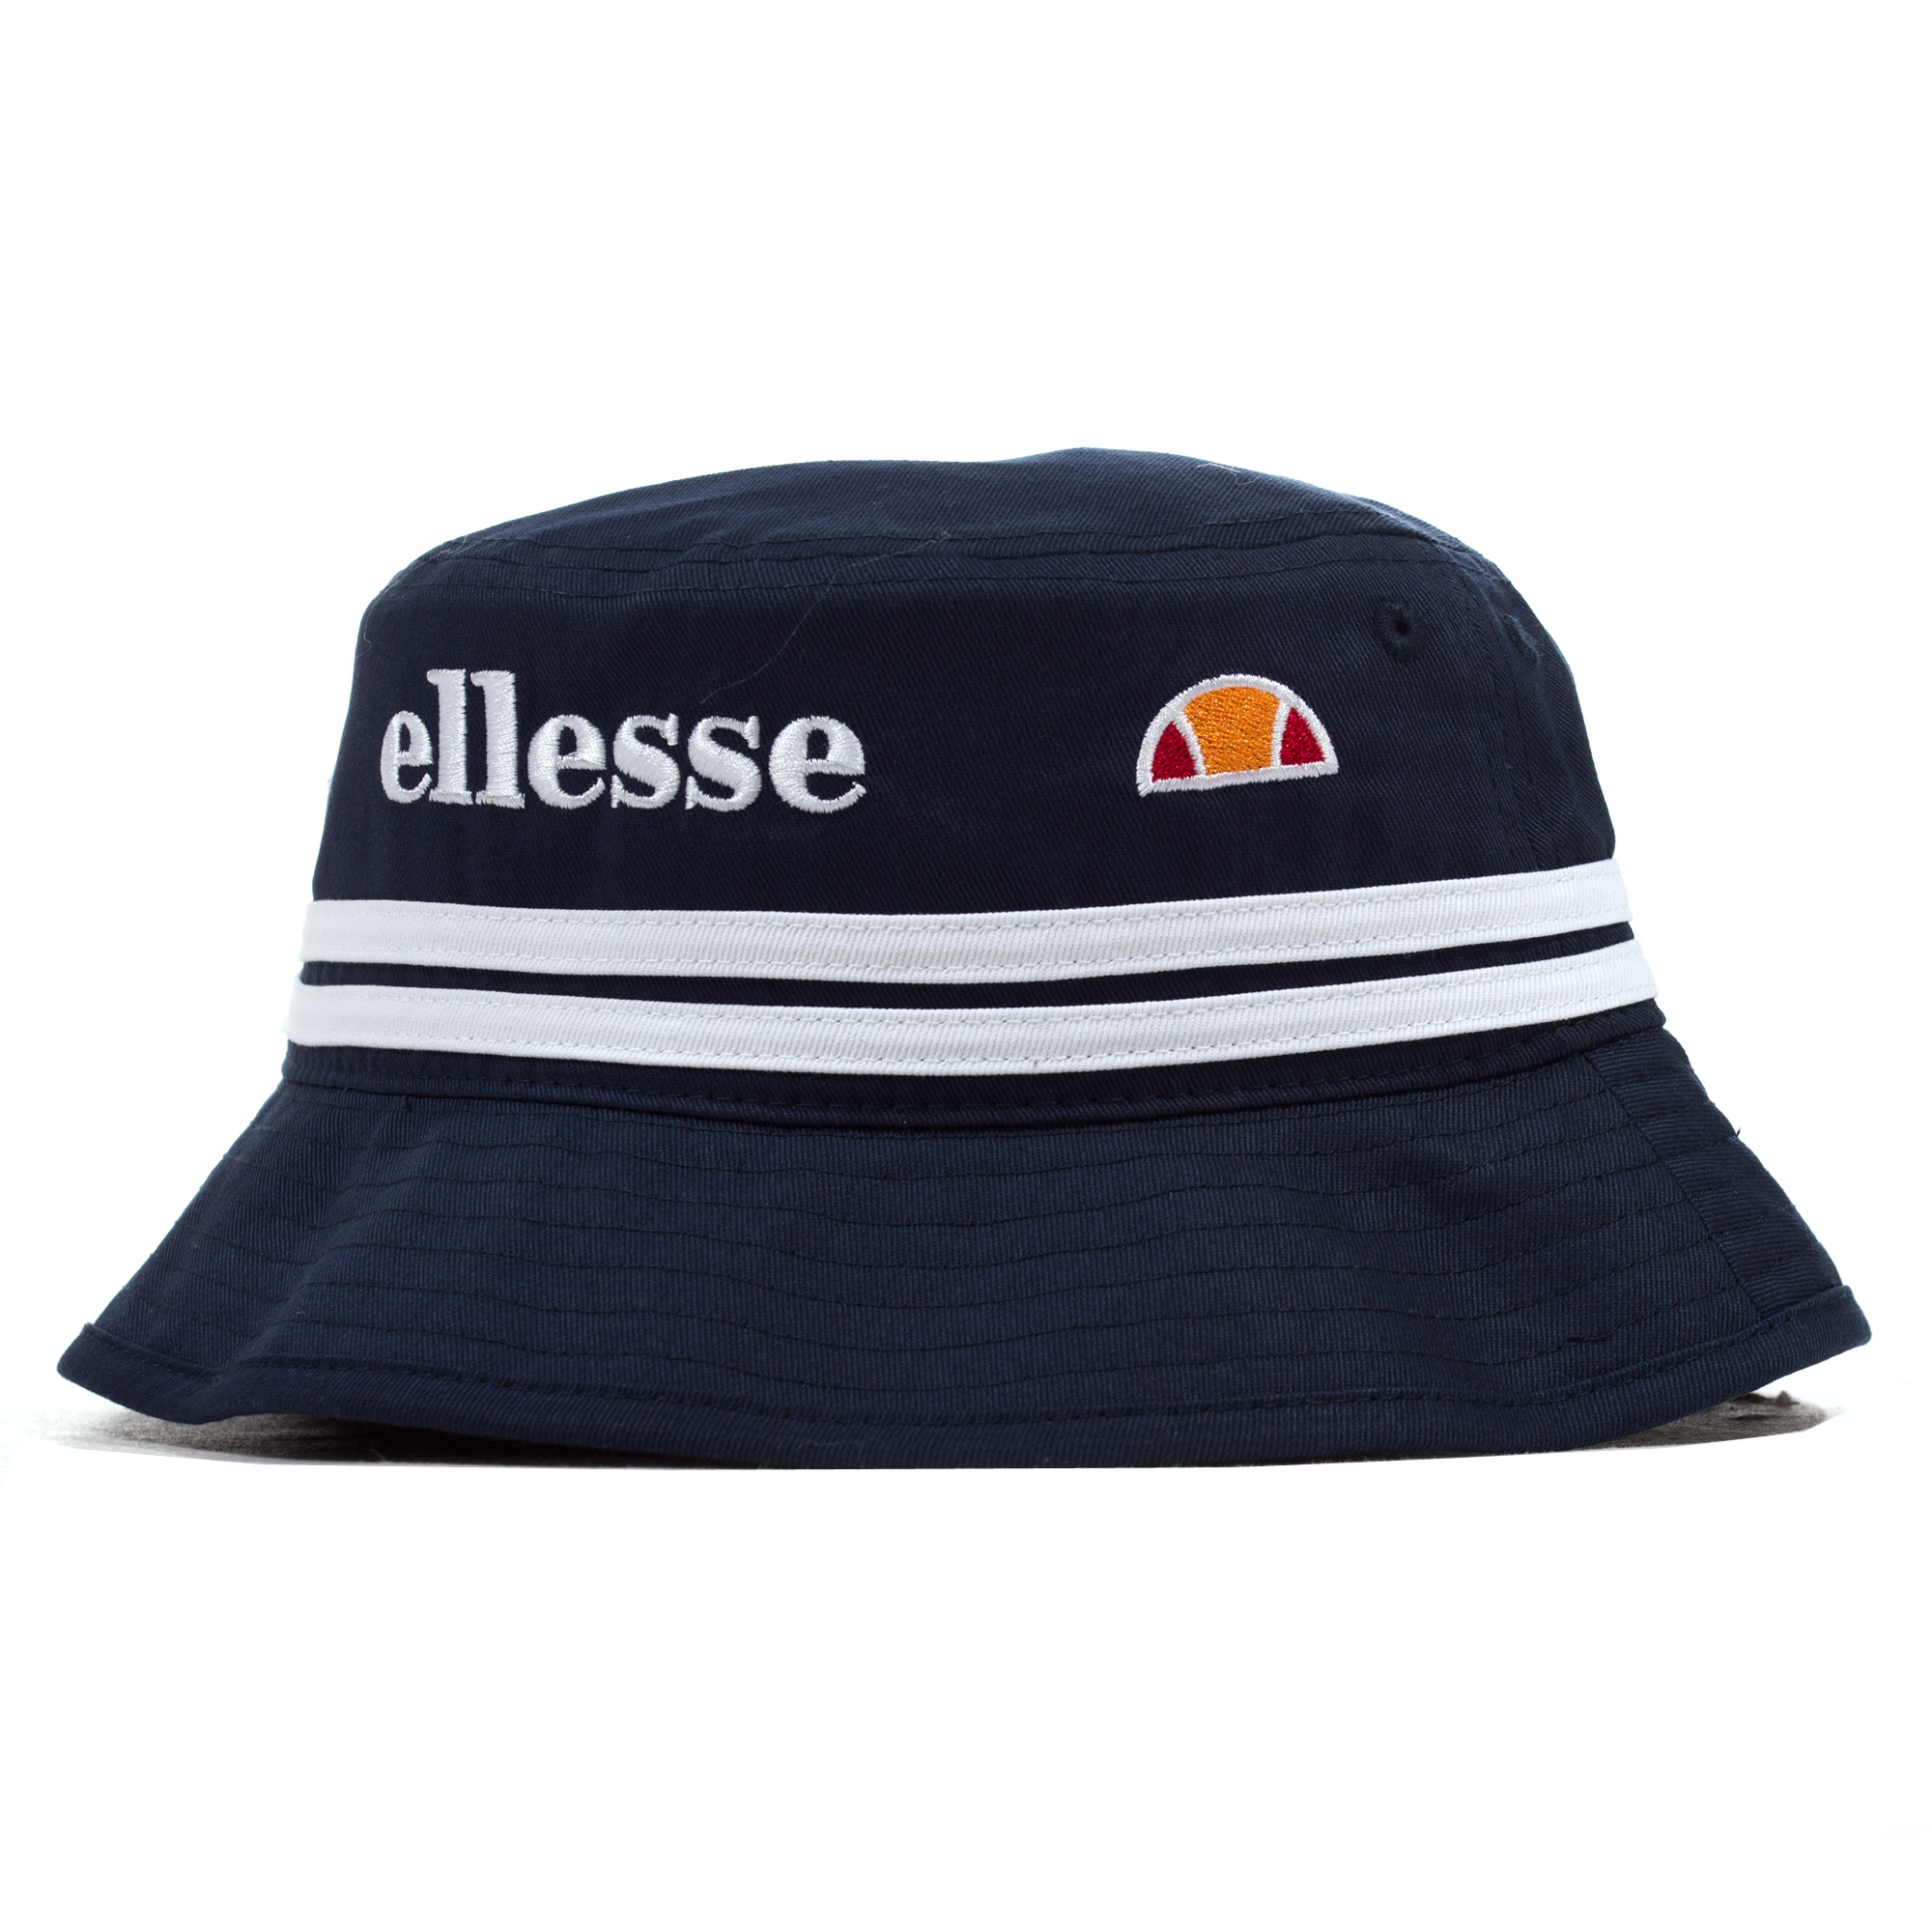 43a5cb0b9d28a Details about Ellesse Heritage Lorenzo Fashion Festival Bucket Hat One Size  - Navy Blue